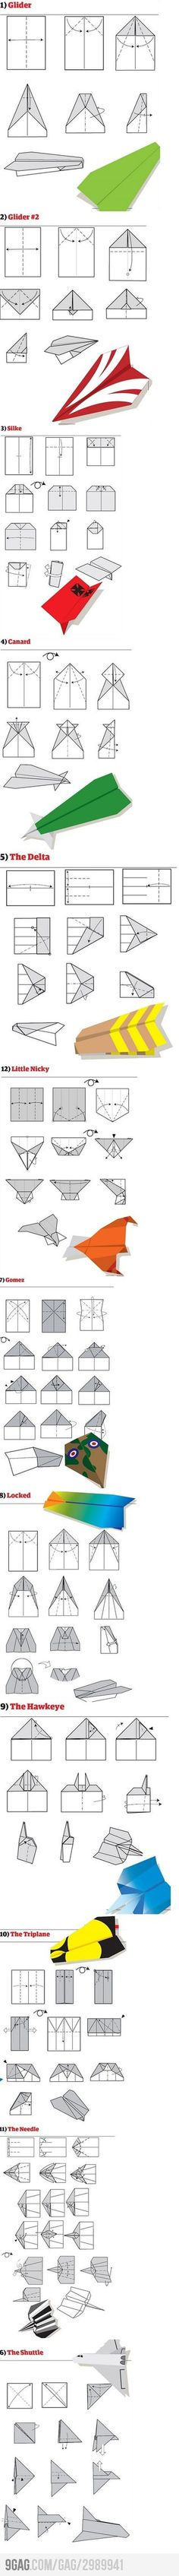 Papierflieger - how to make all kinds of paper airplanes